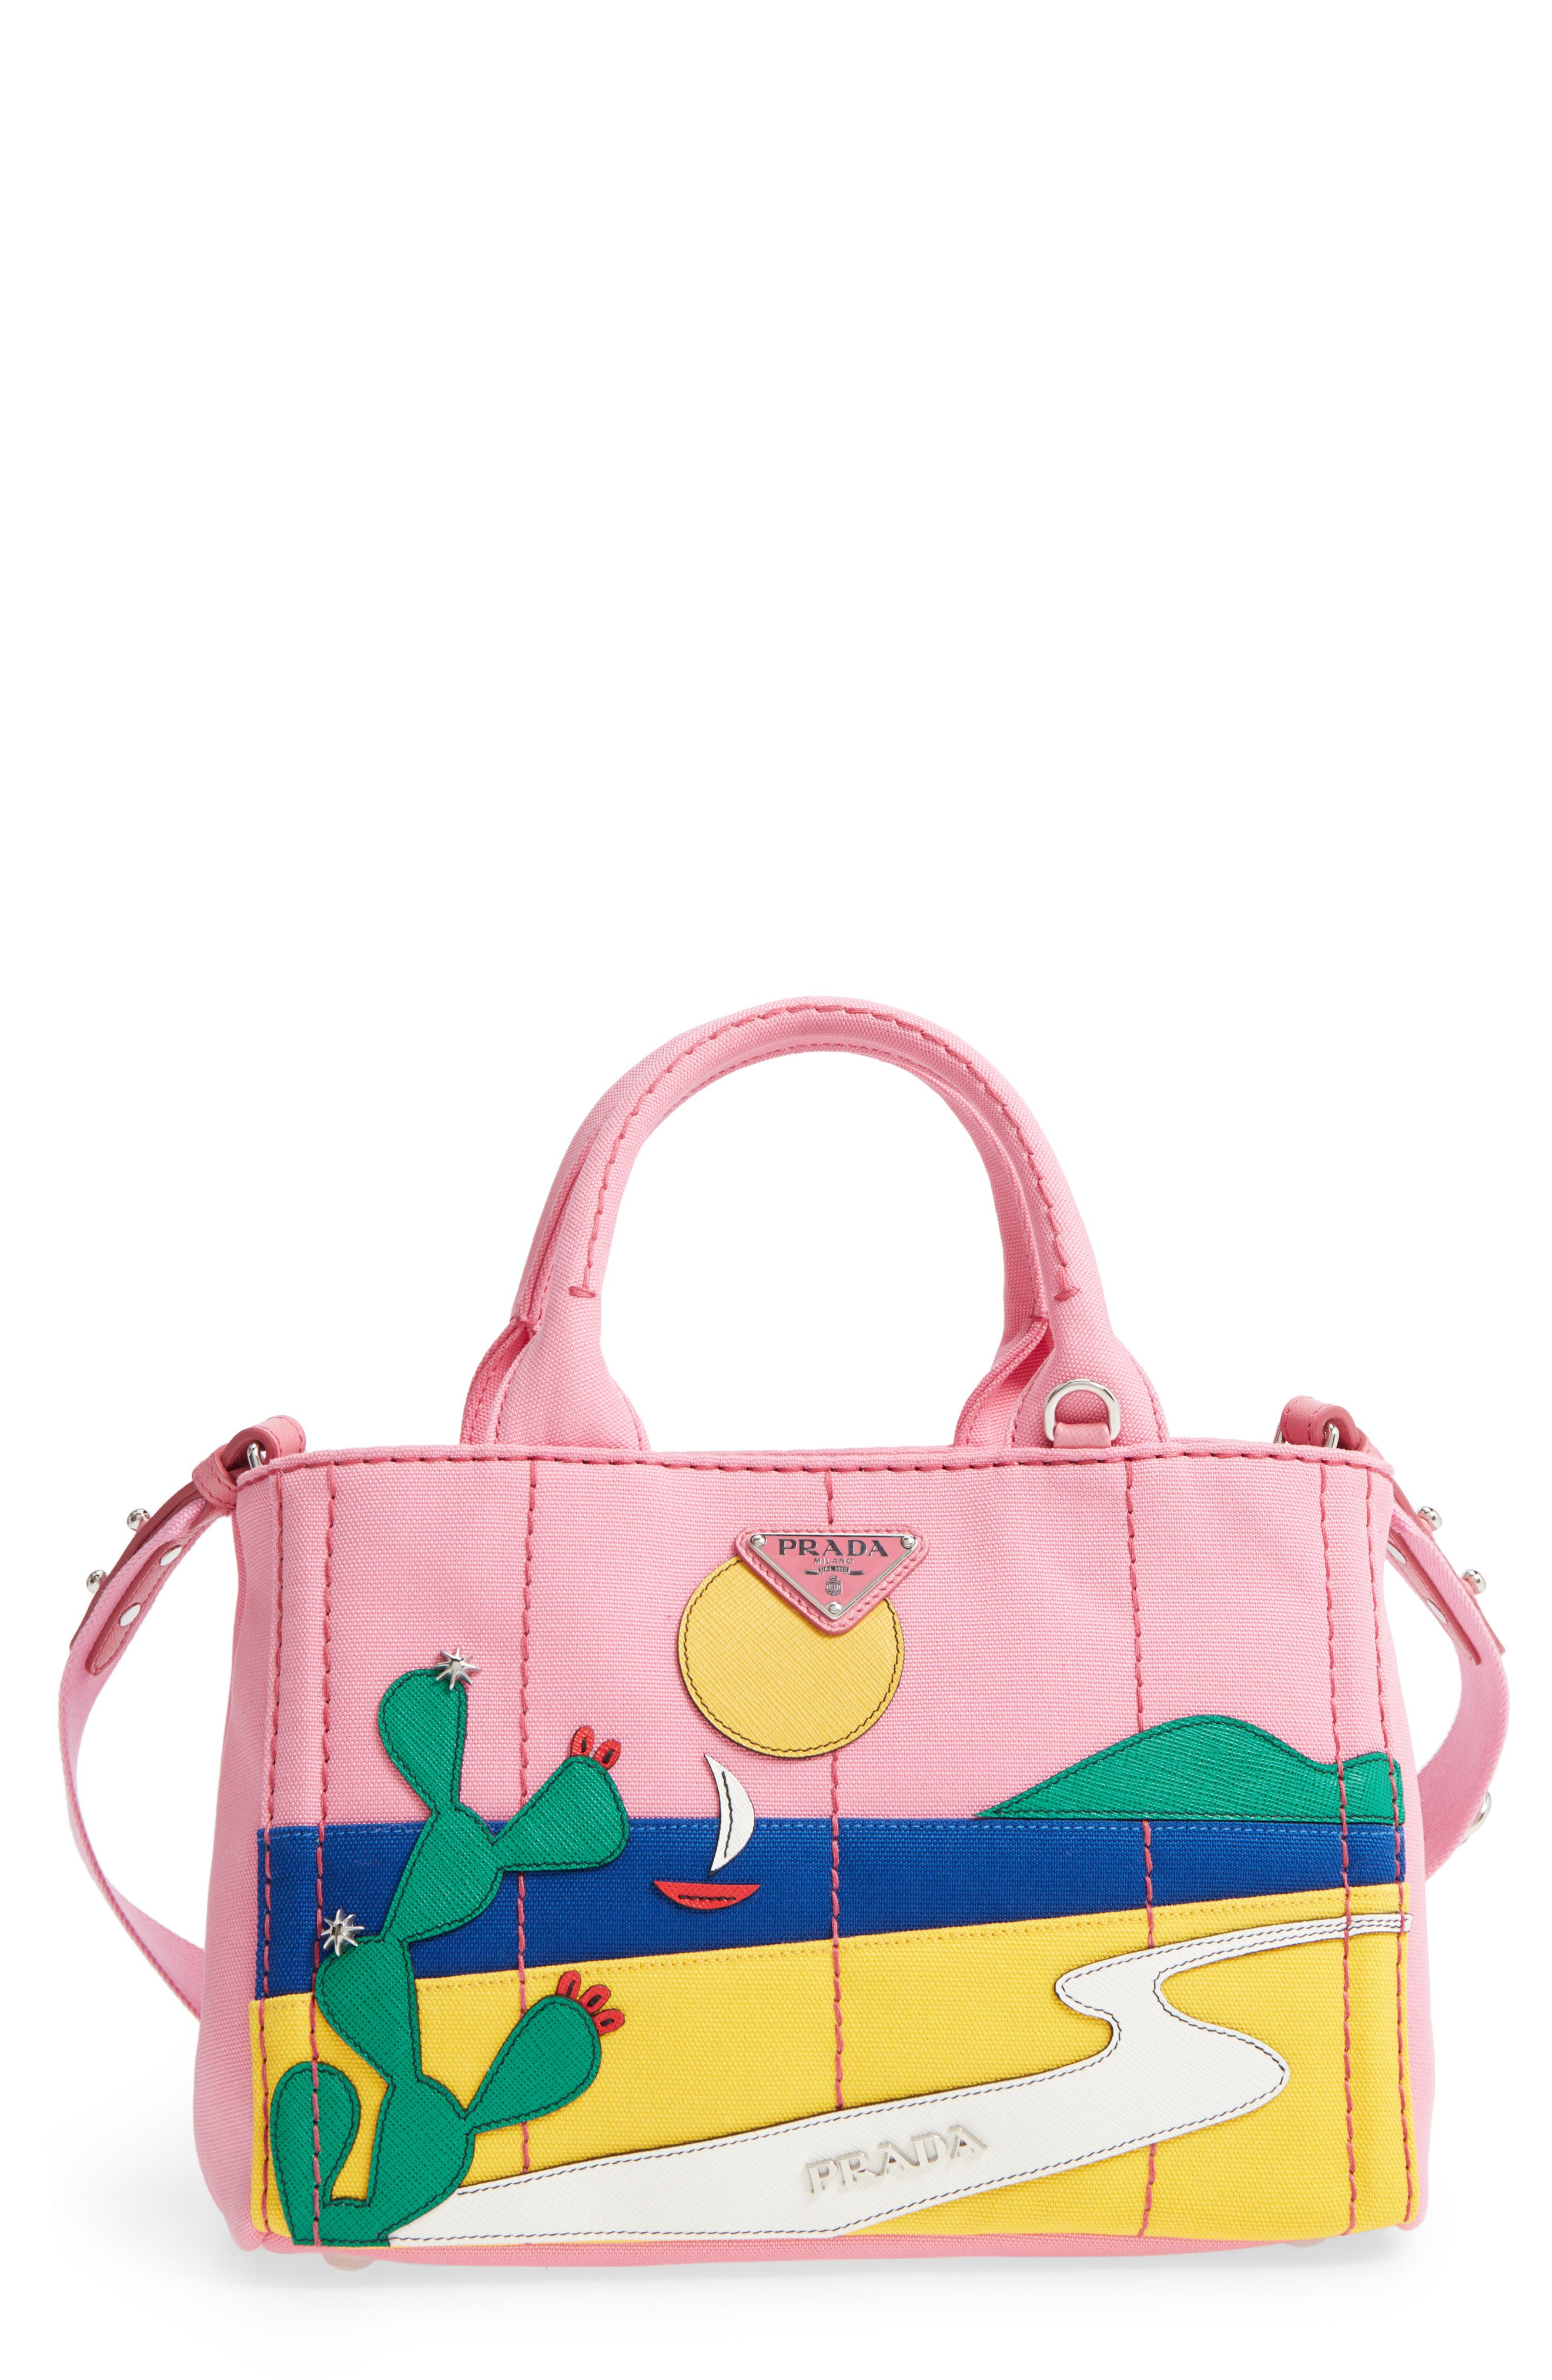 Desert Motif Patch Leather & Canvas Tote,                             Main thumbnail 1, color,                             Pink